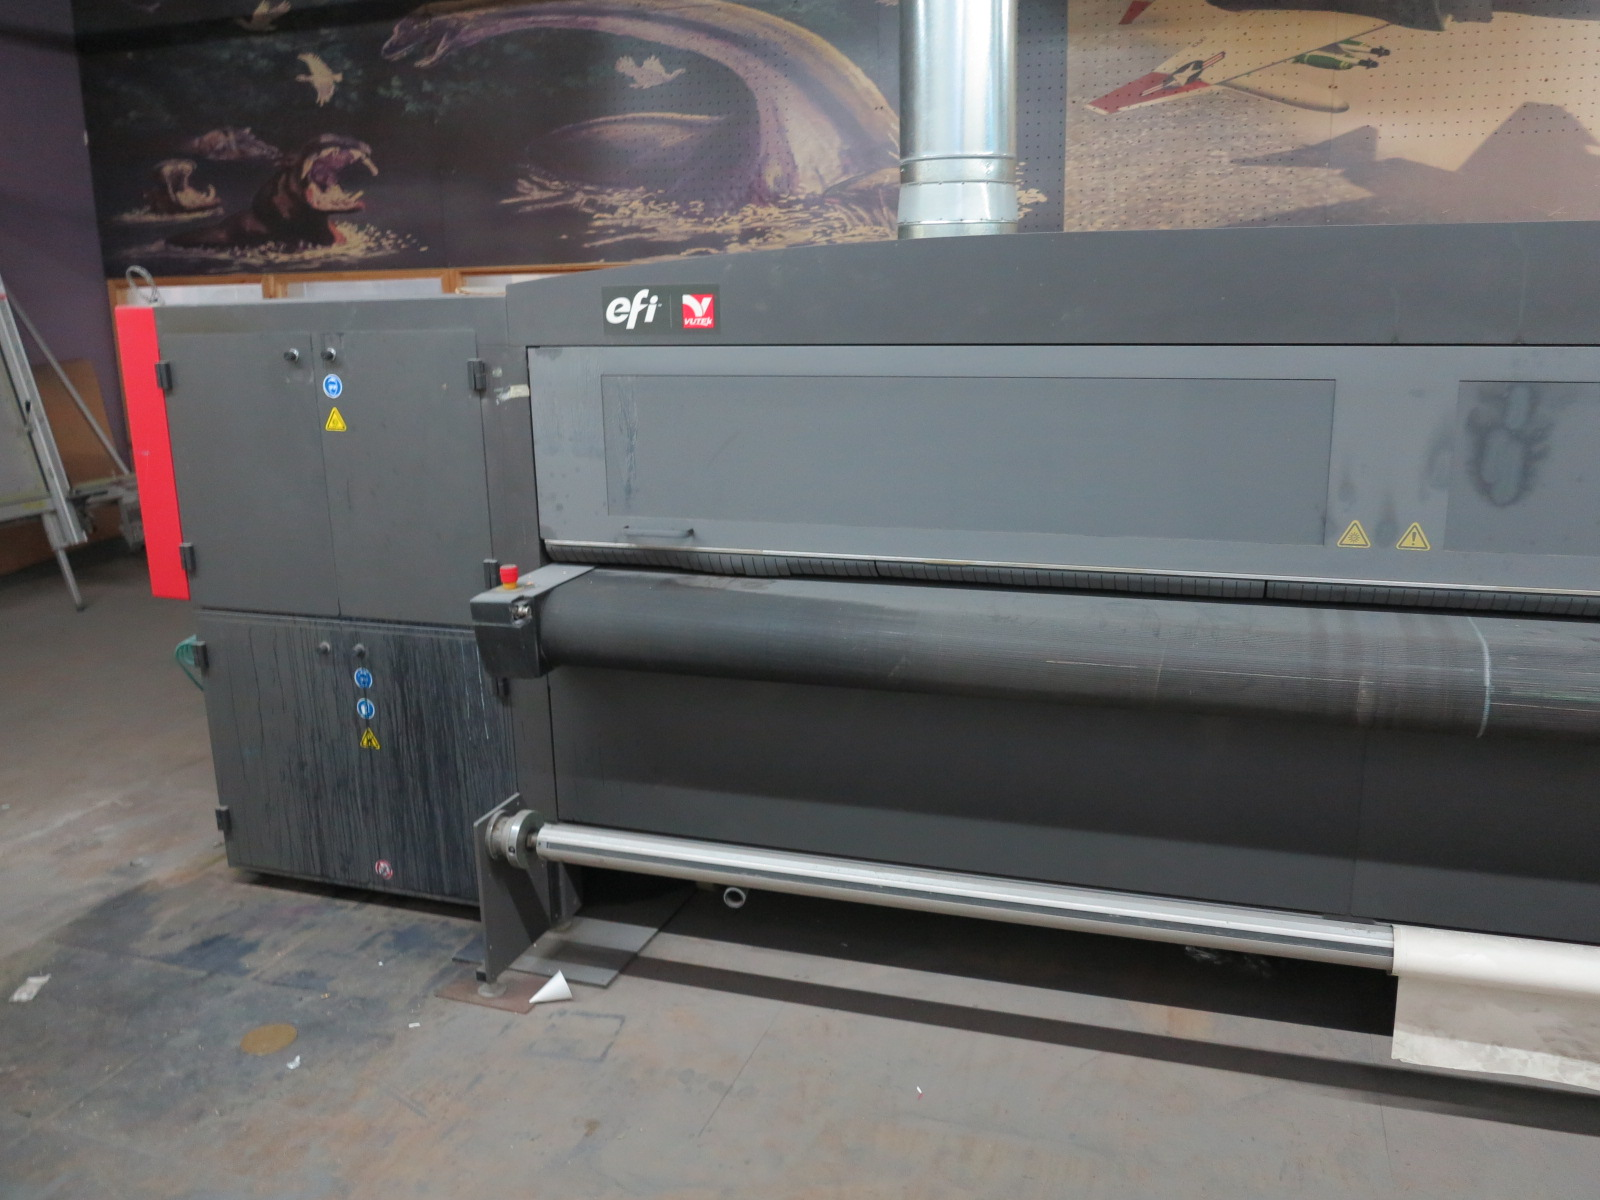 2012 EFI VUTEK QS3220 SUPER LARGE FORMAT PRINTER, FOR RIDGID AND ROLL-TO-ROLL PRINTING, S/N 630312 - Image 3 of 5